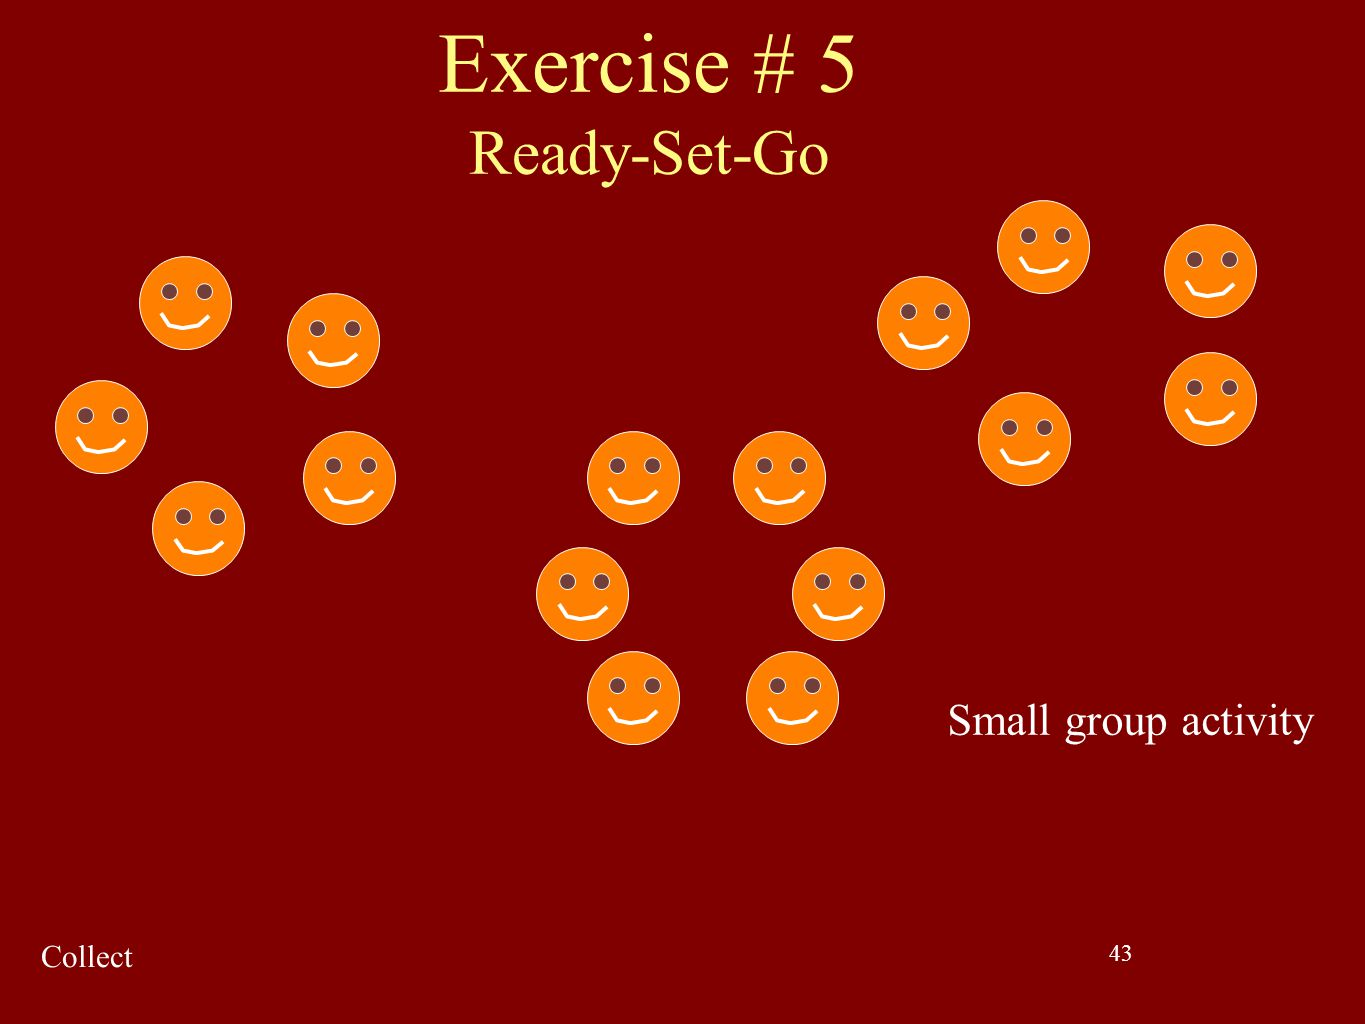 Exercise # 5 Ready-Set-Go